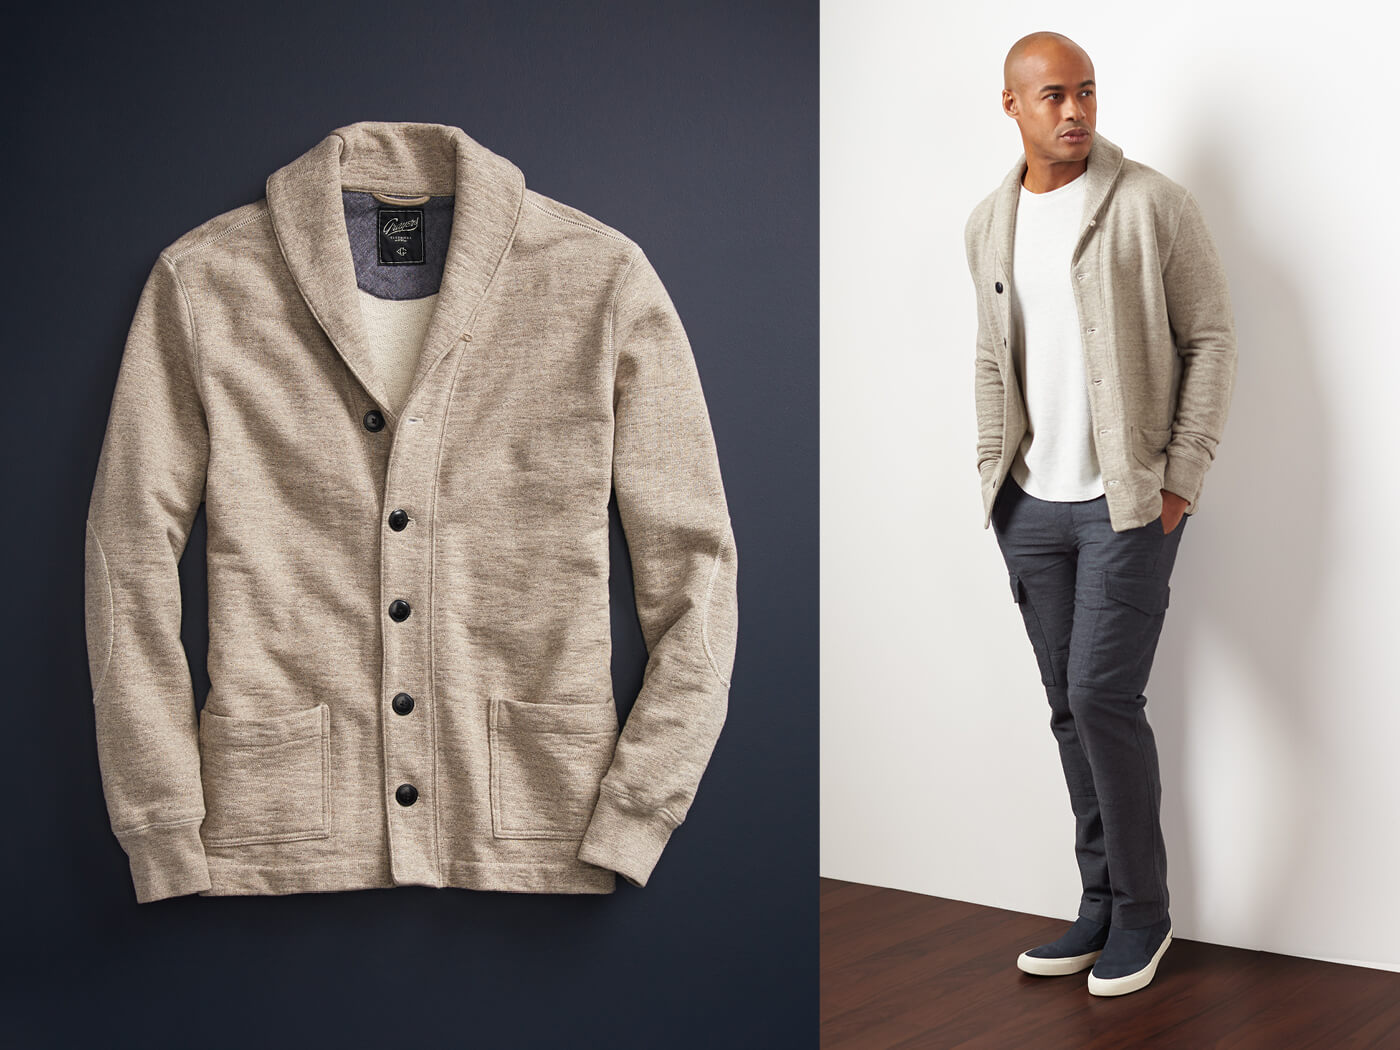 The Four Investment Pieces You Need Stitch Fix Men